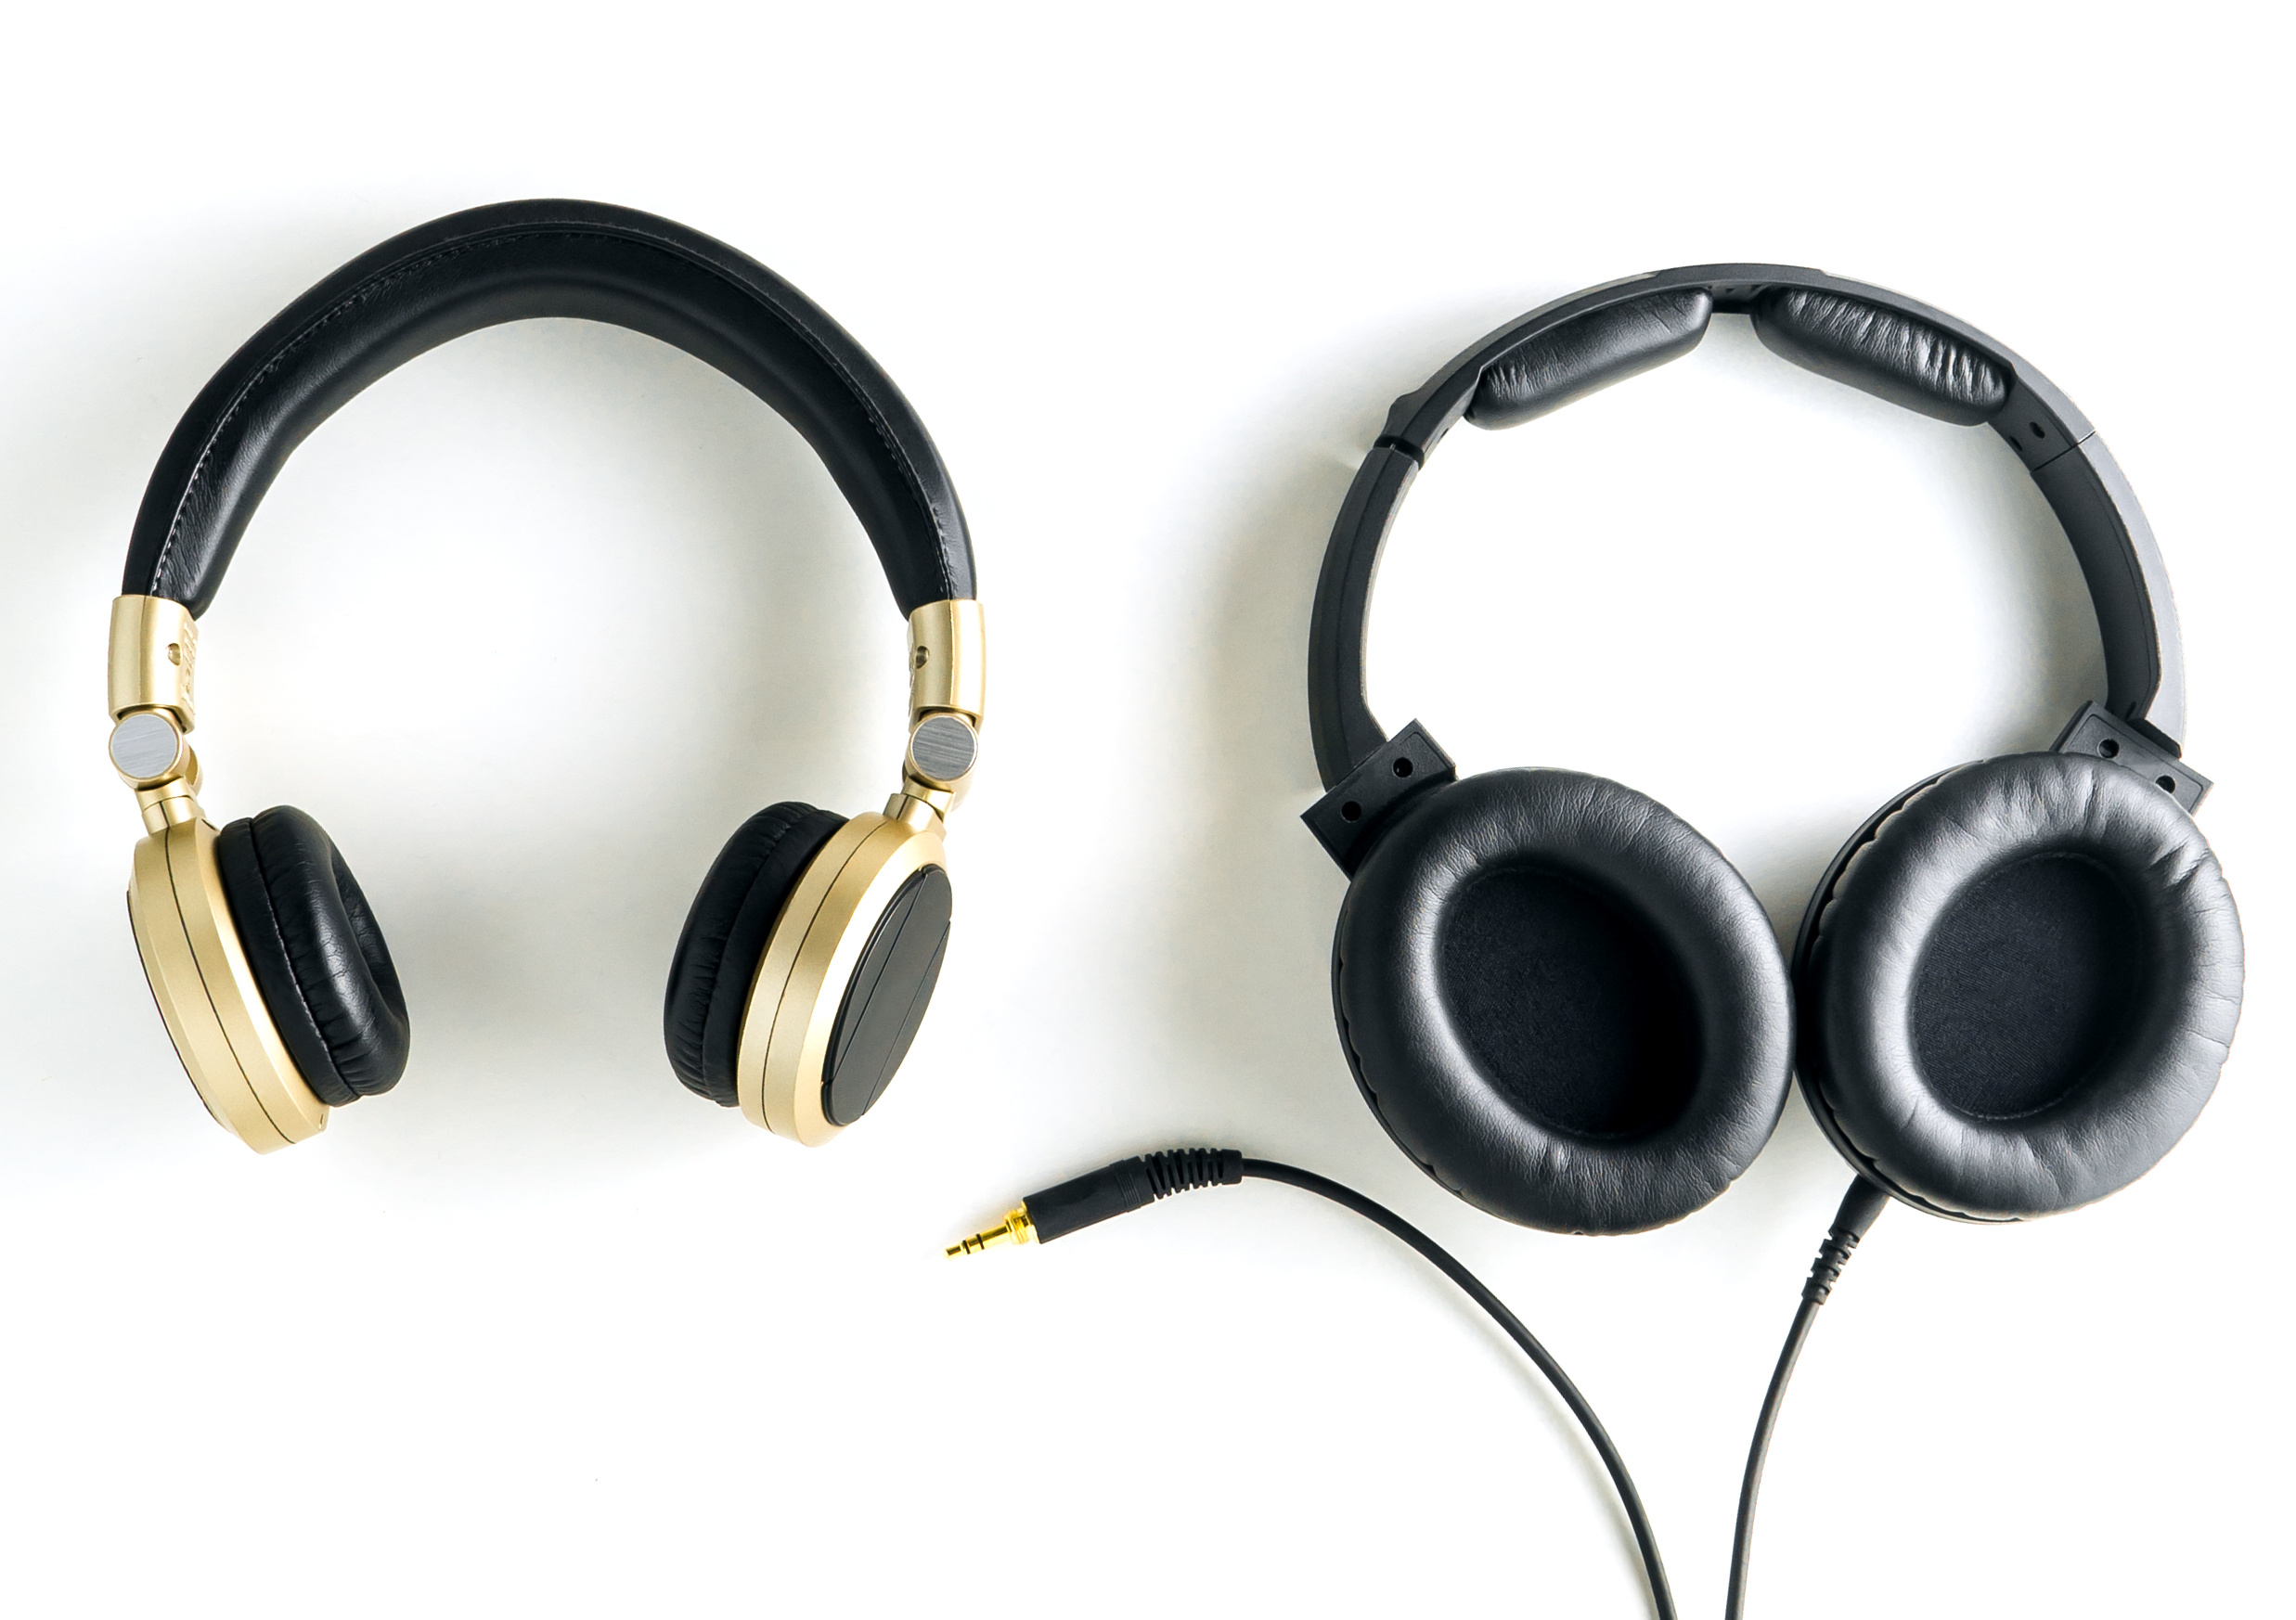 Wireless Vs Wired Headphones Advantages And Disadvantages